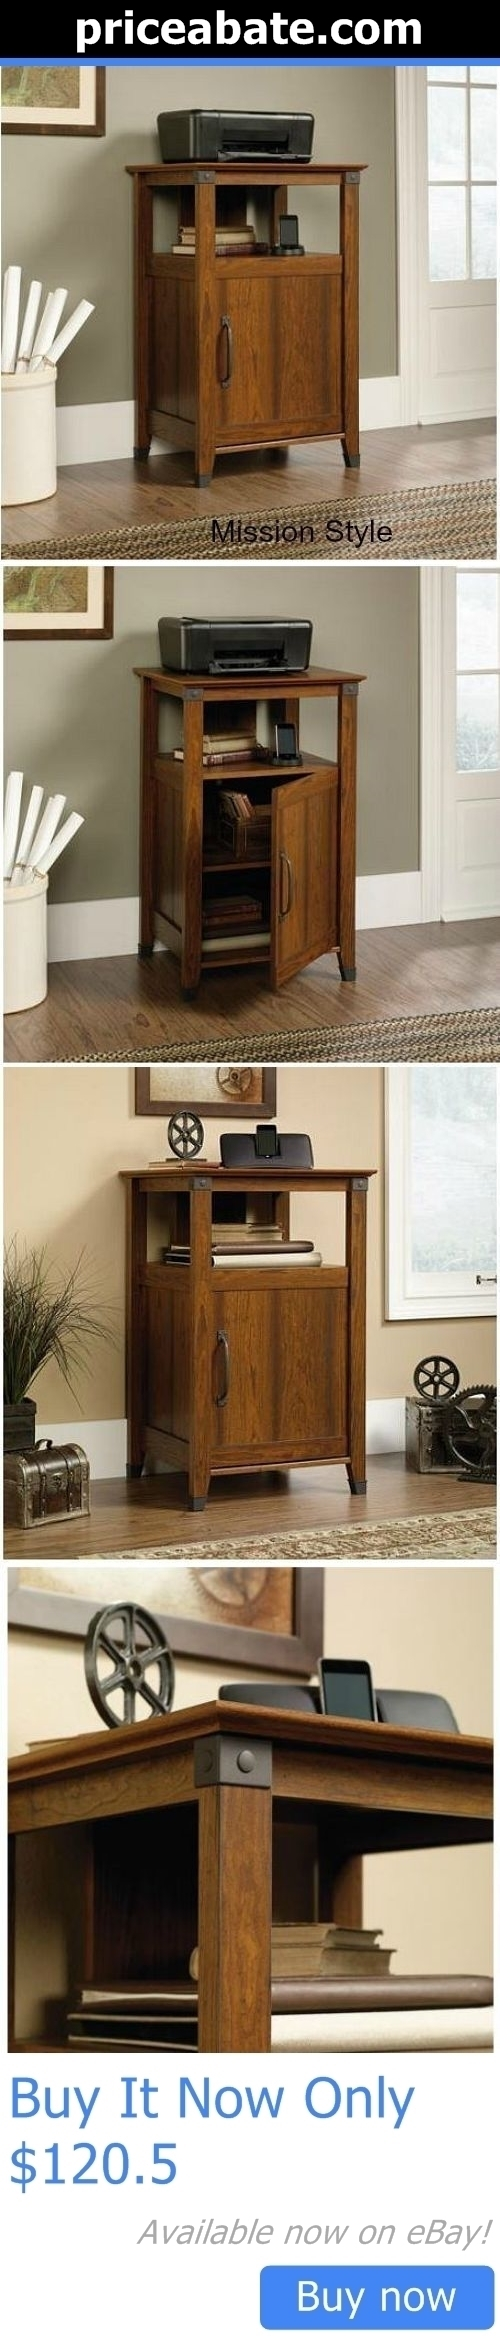 Office Furniture: Mission Style Printer Stand Wood Office ...